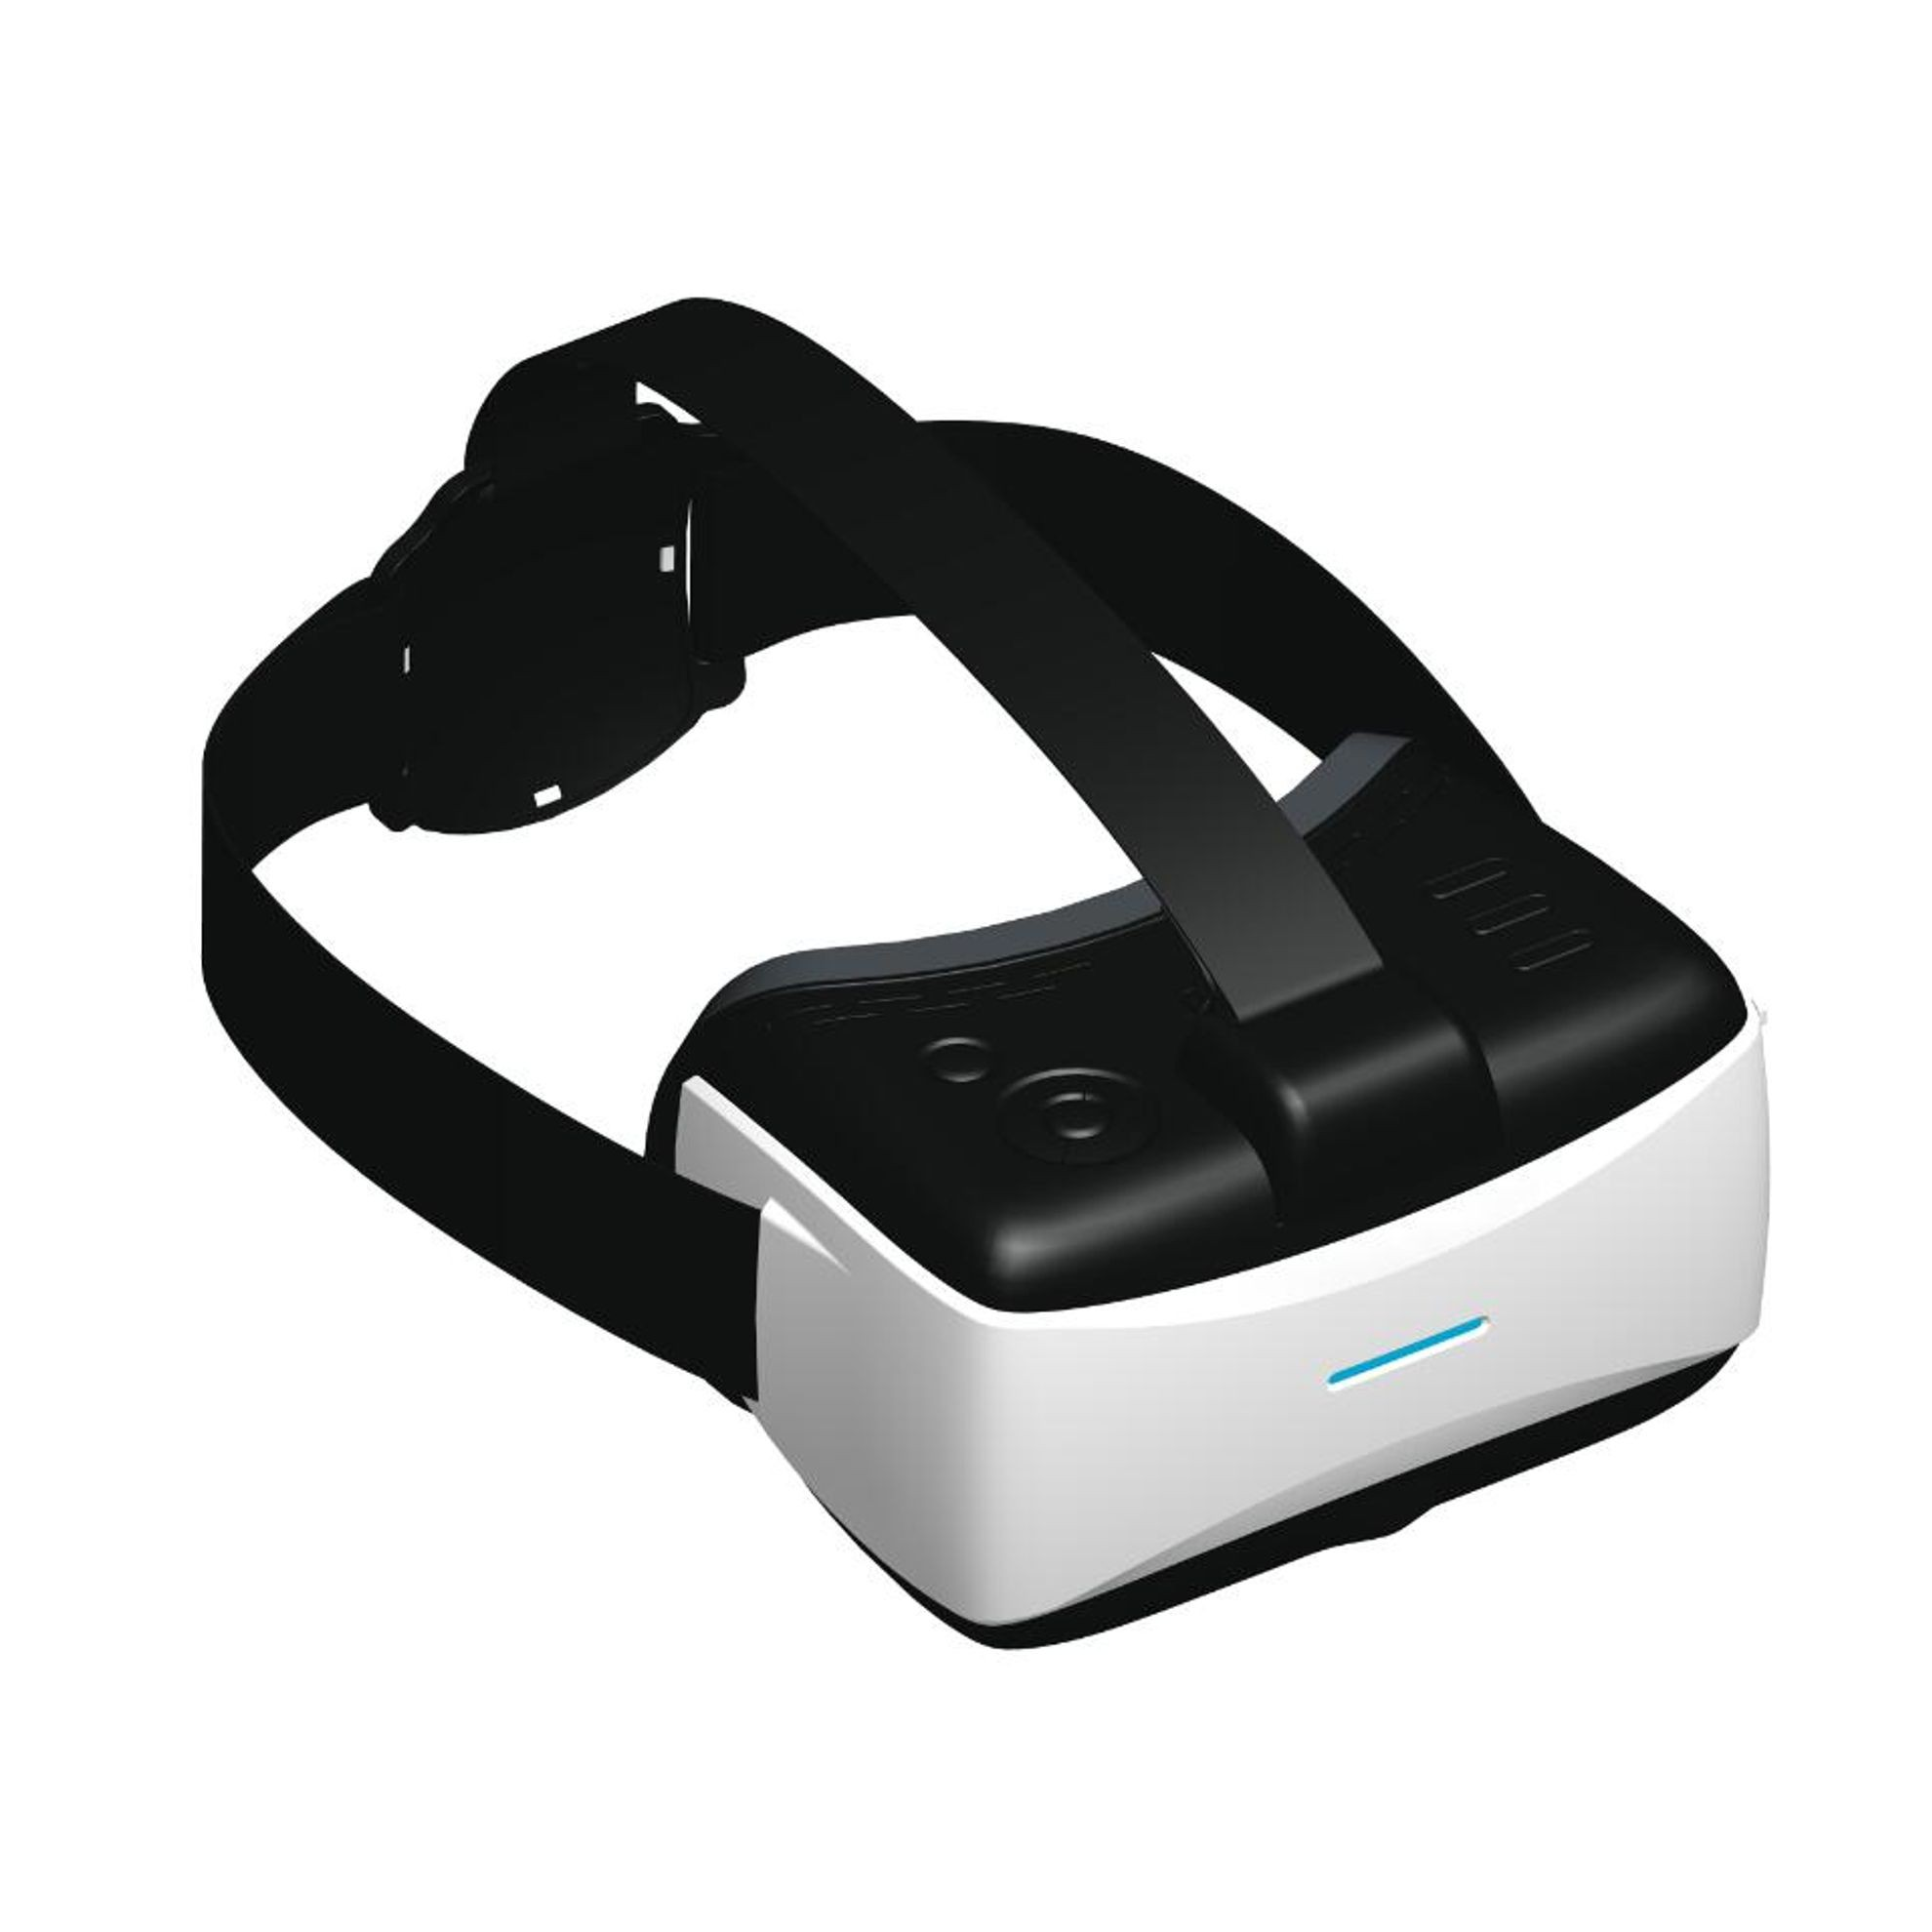 be4744c53af Virtual Reality Headset with WIFI Android - Dorry HA554 - Virtual ...